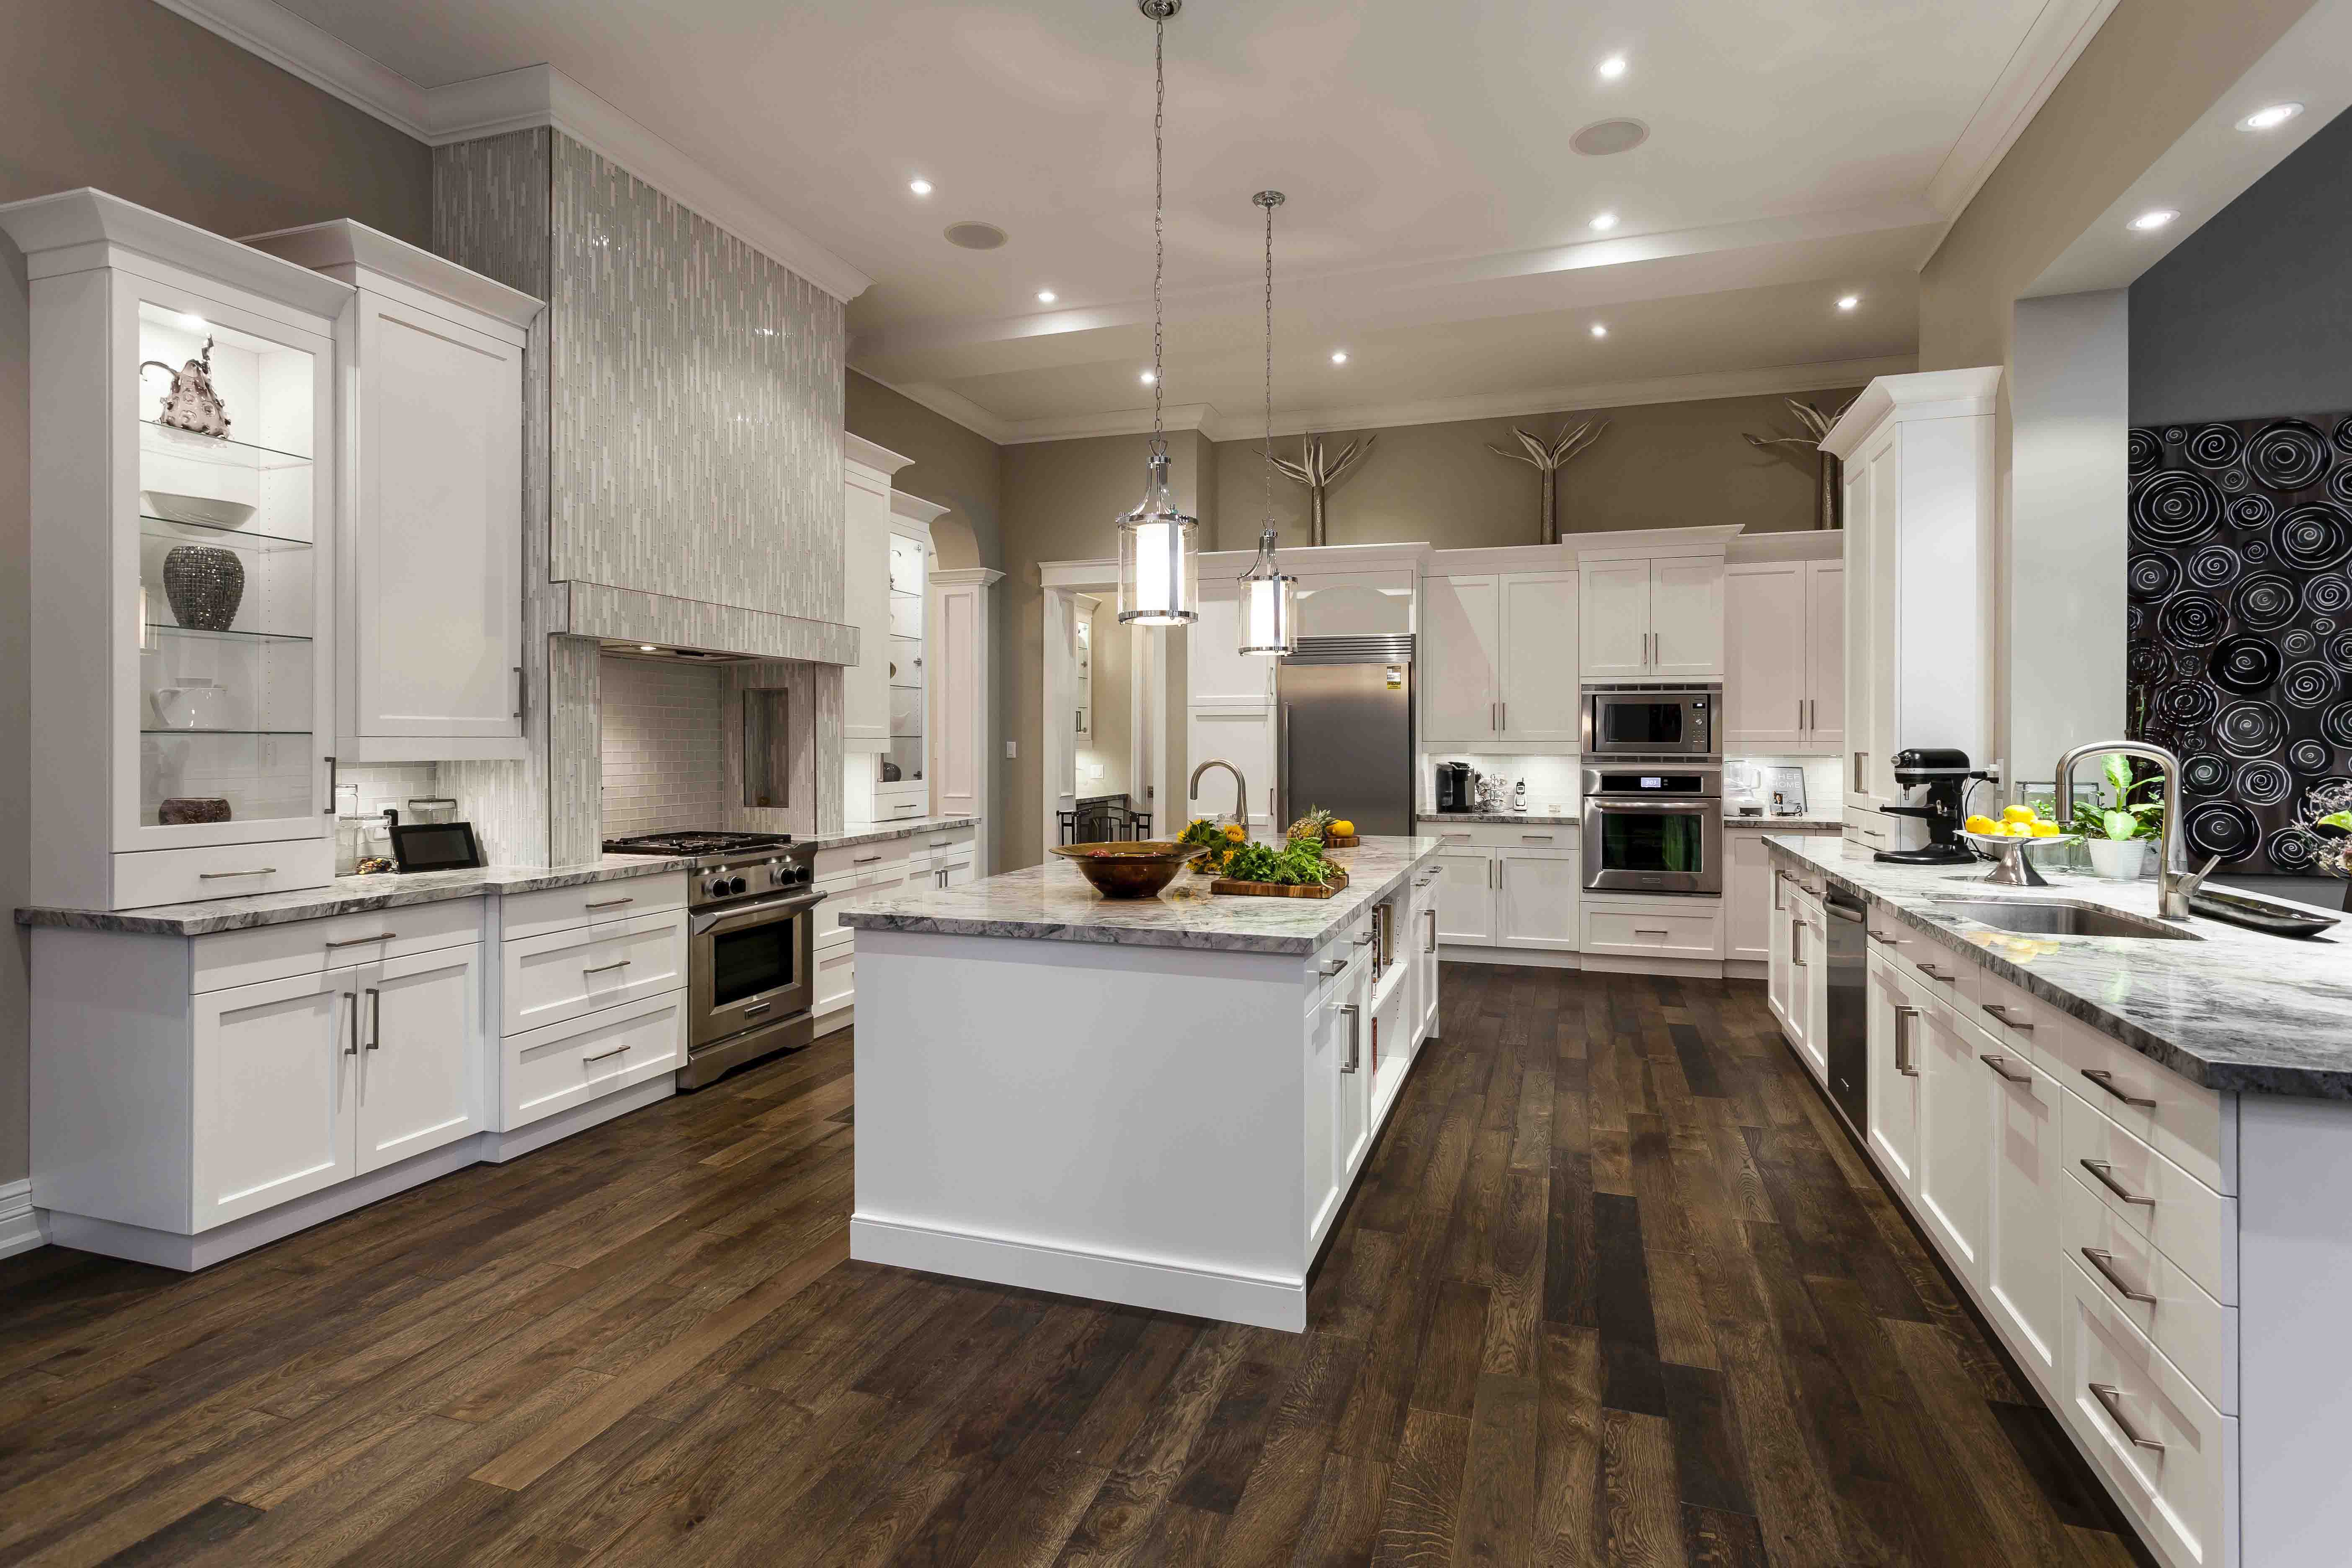 Kitchens by Elmwood Custom Cabinetry